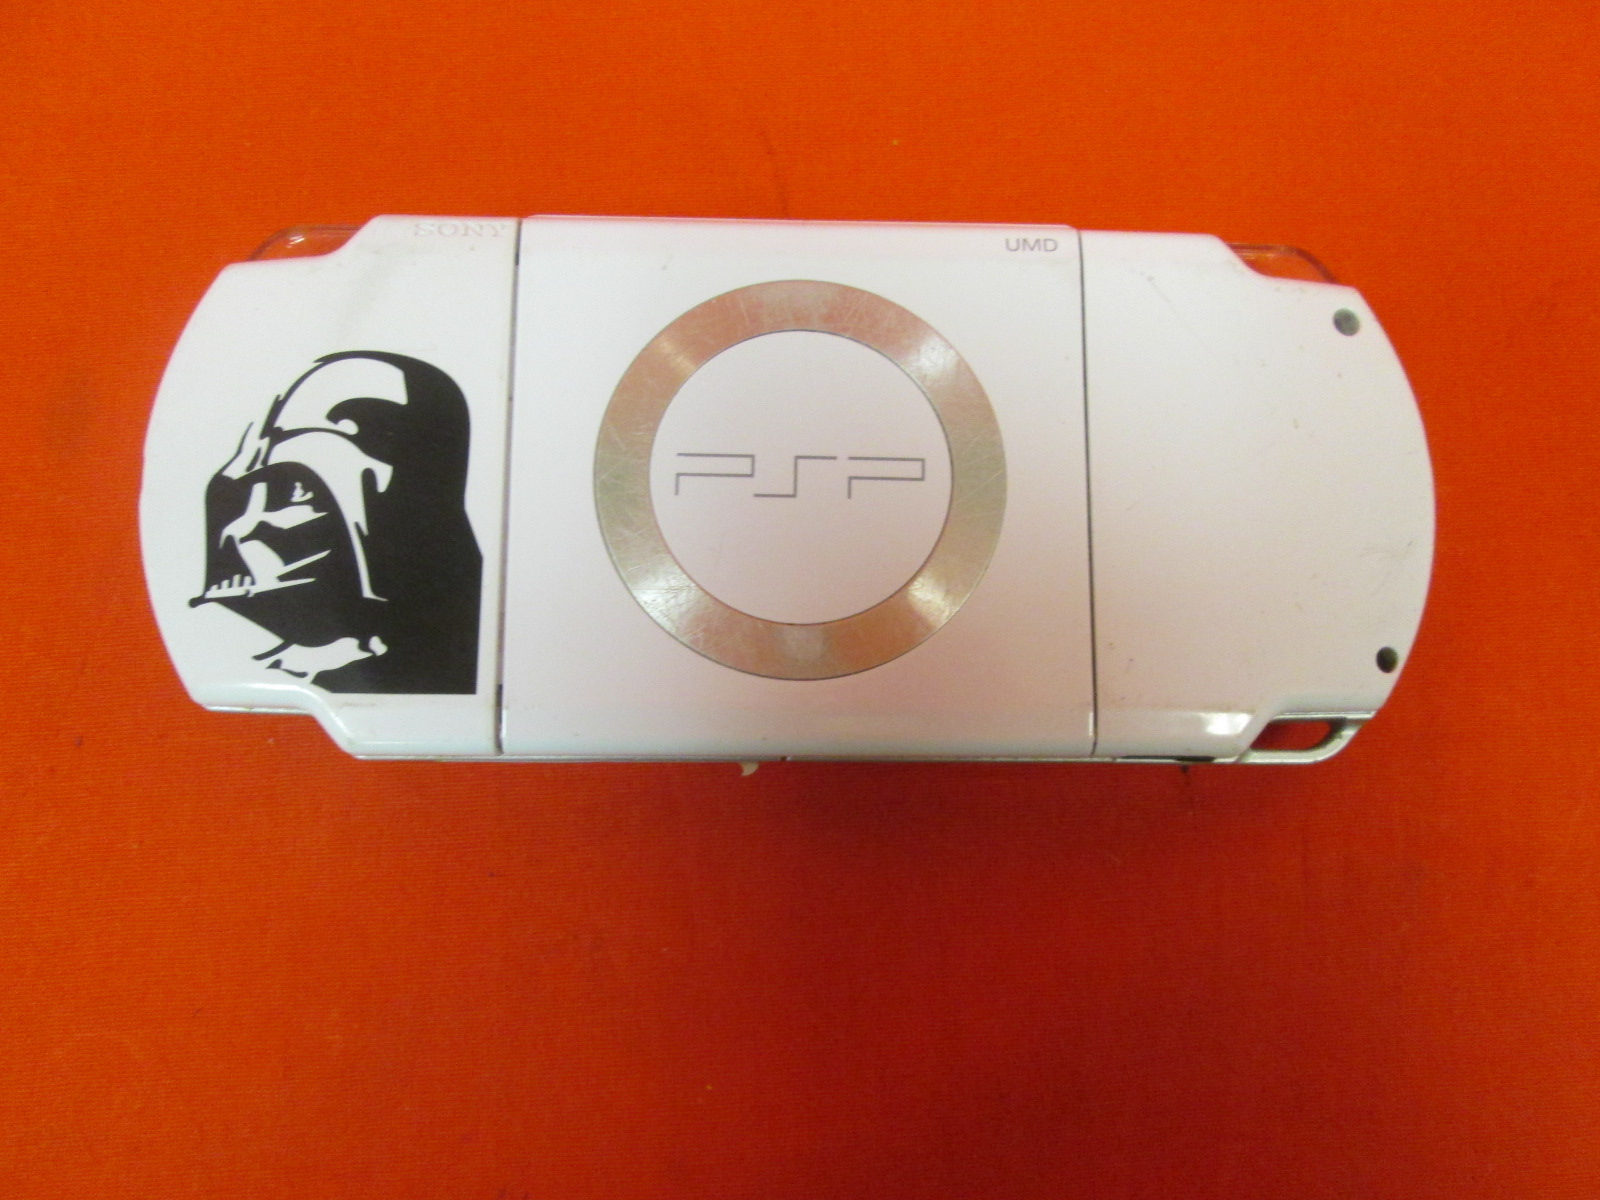 Image 1 of Sony PlayStation PSP 2001 Portable Handheld Game Console White